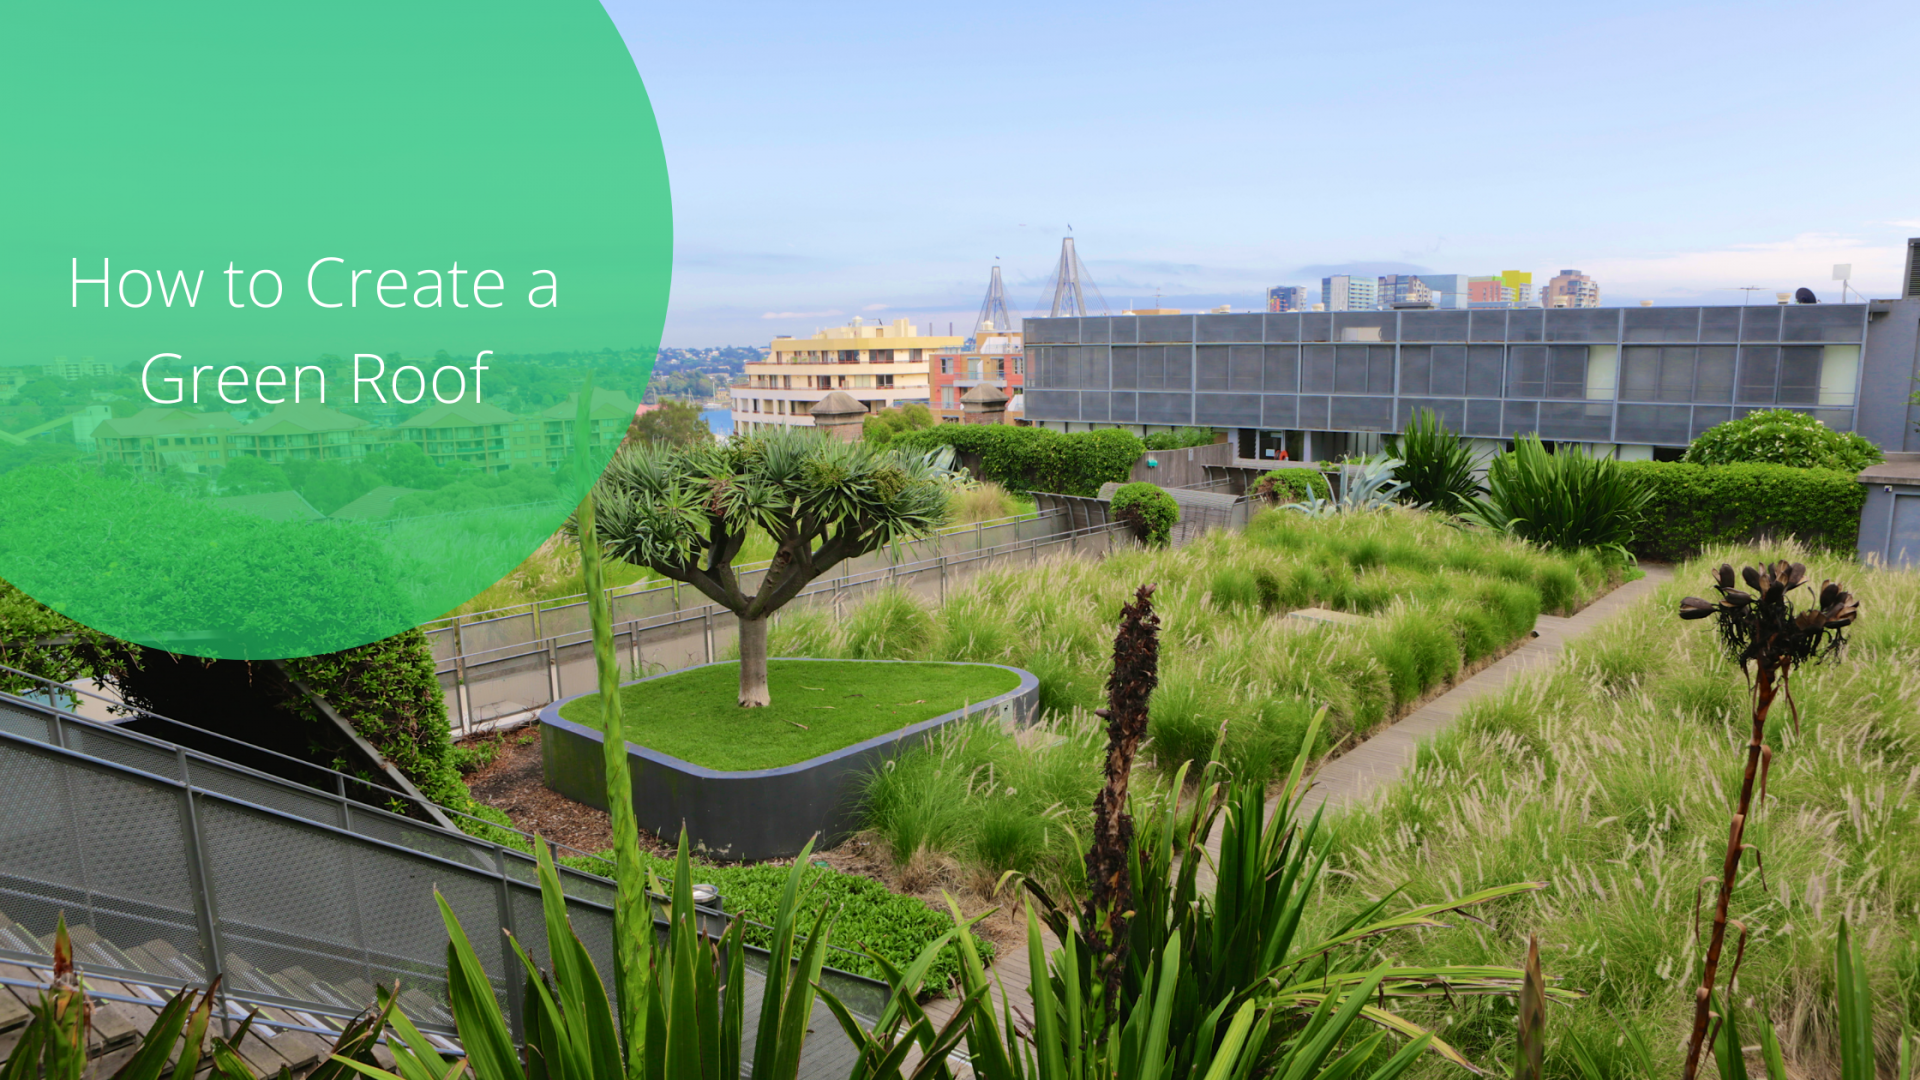 How to Create a Green Roof